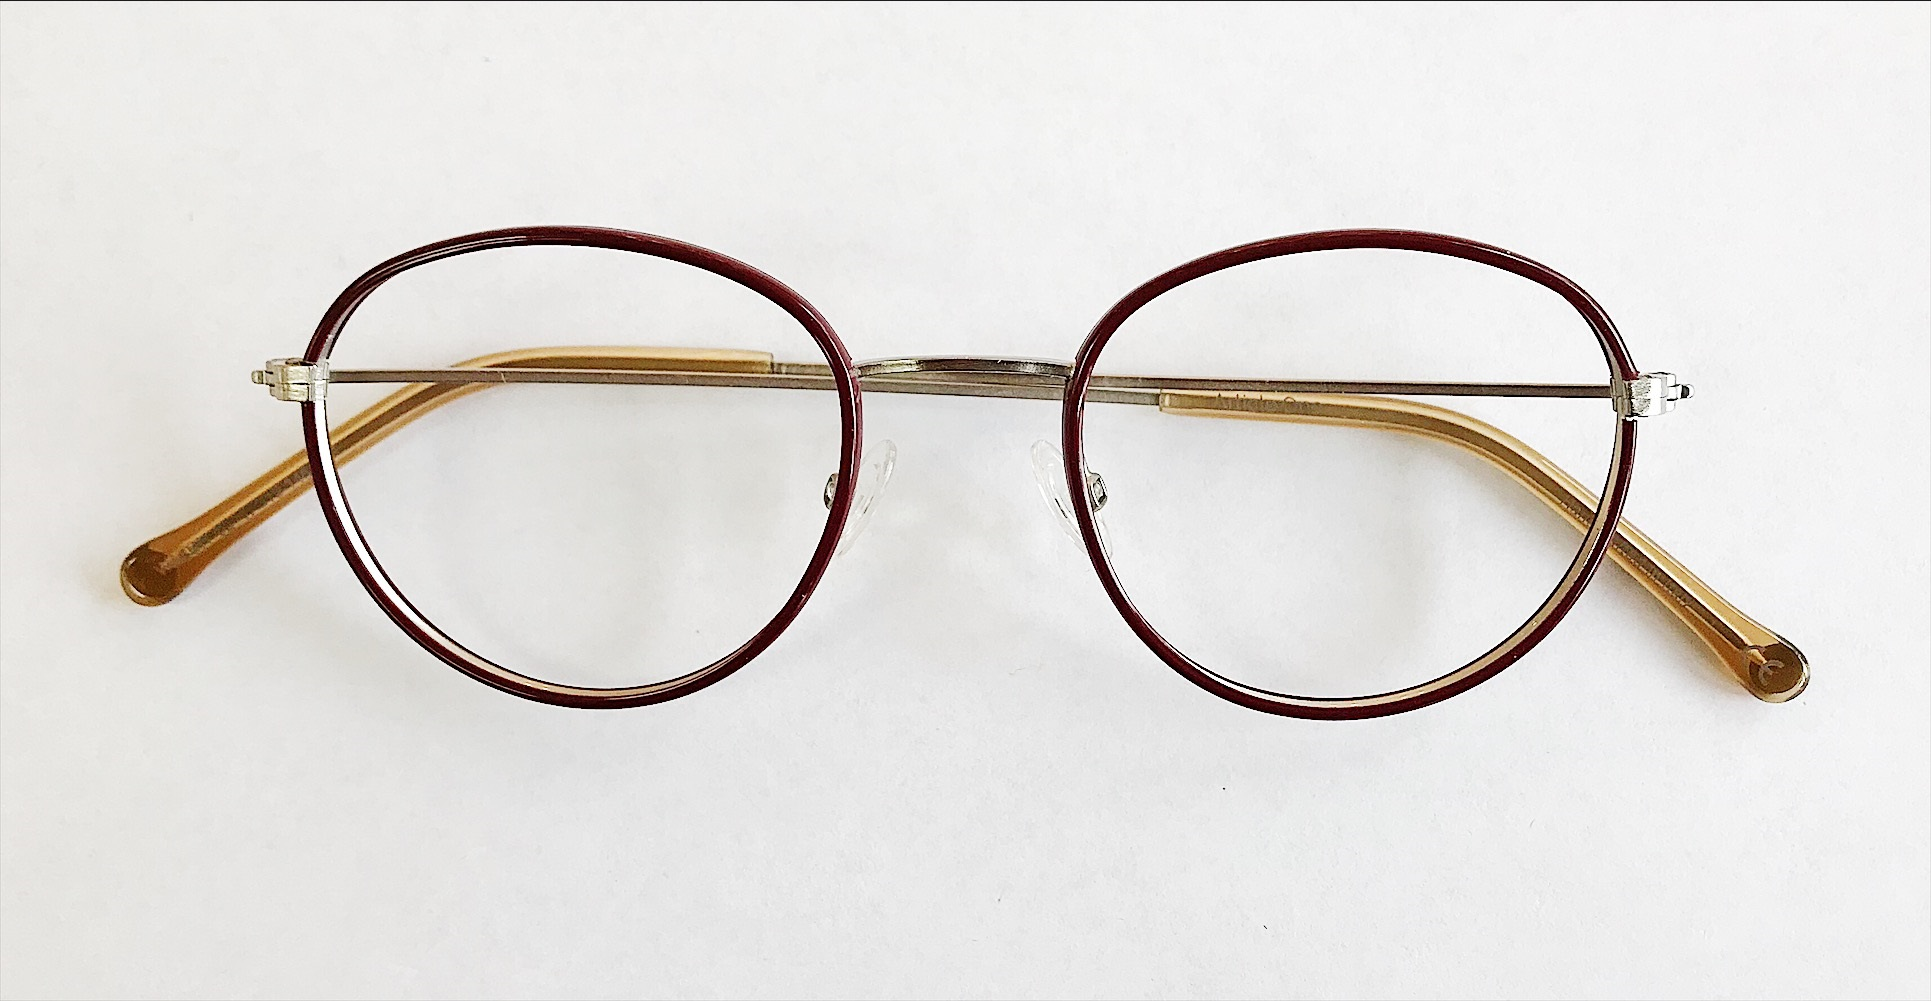 aaff0b42c8 The family owned factory has 12 craftsman who are experts in what they do.  One of the smallest components of eyewear is often the most revealing of  its ...